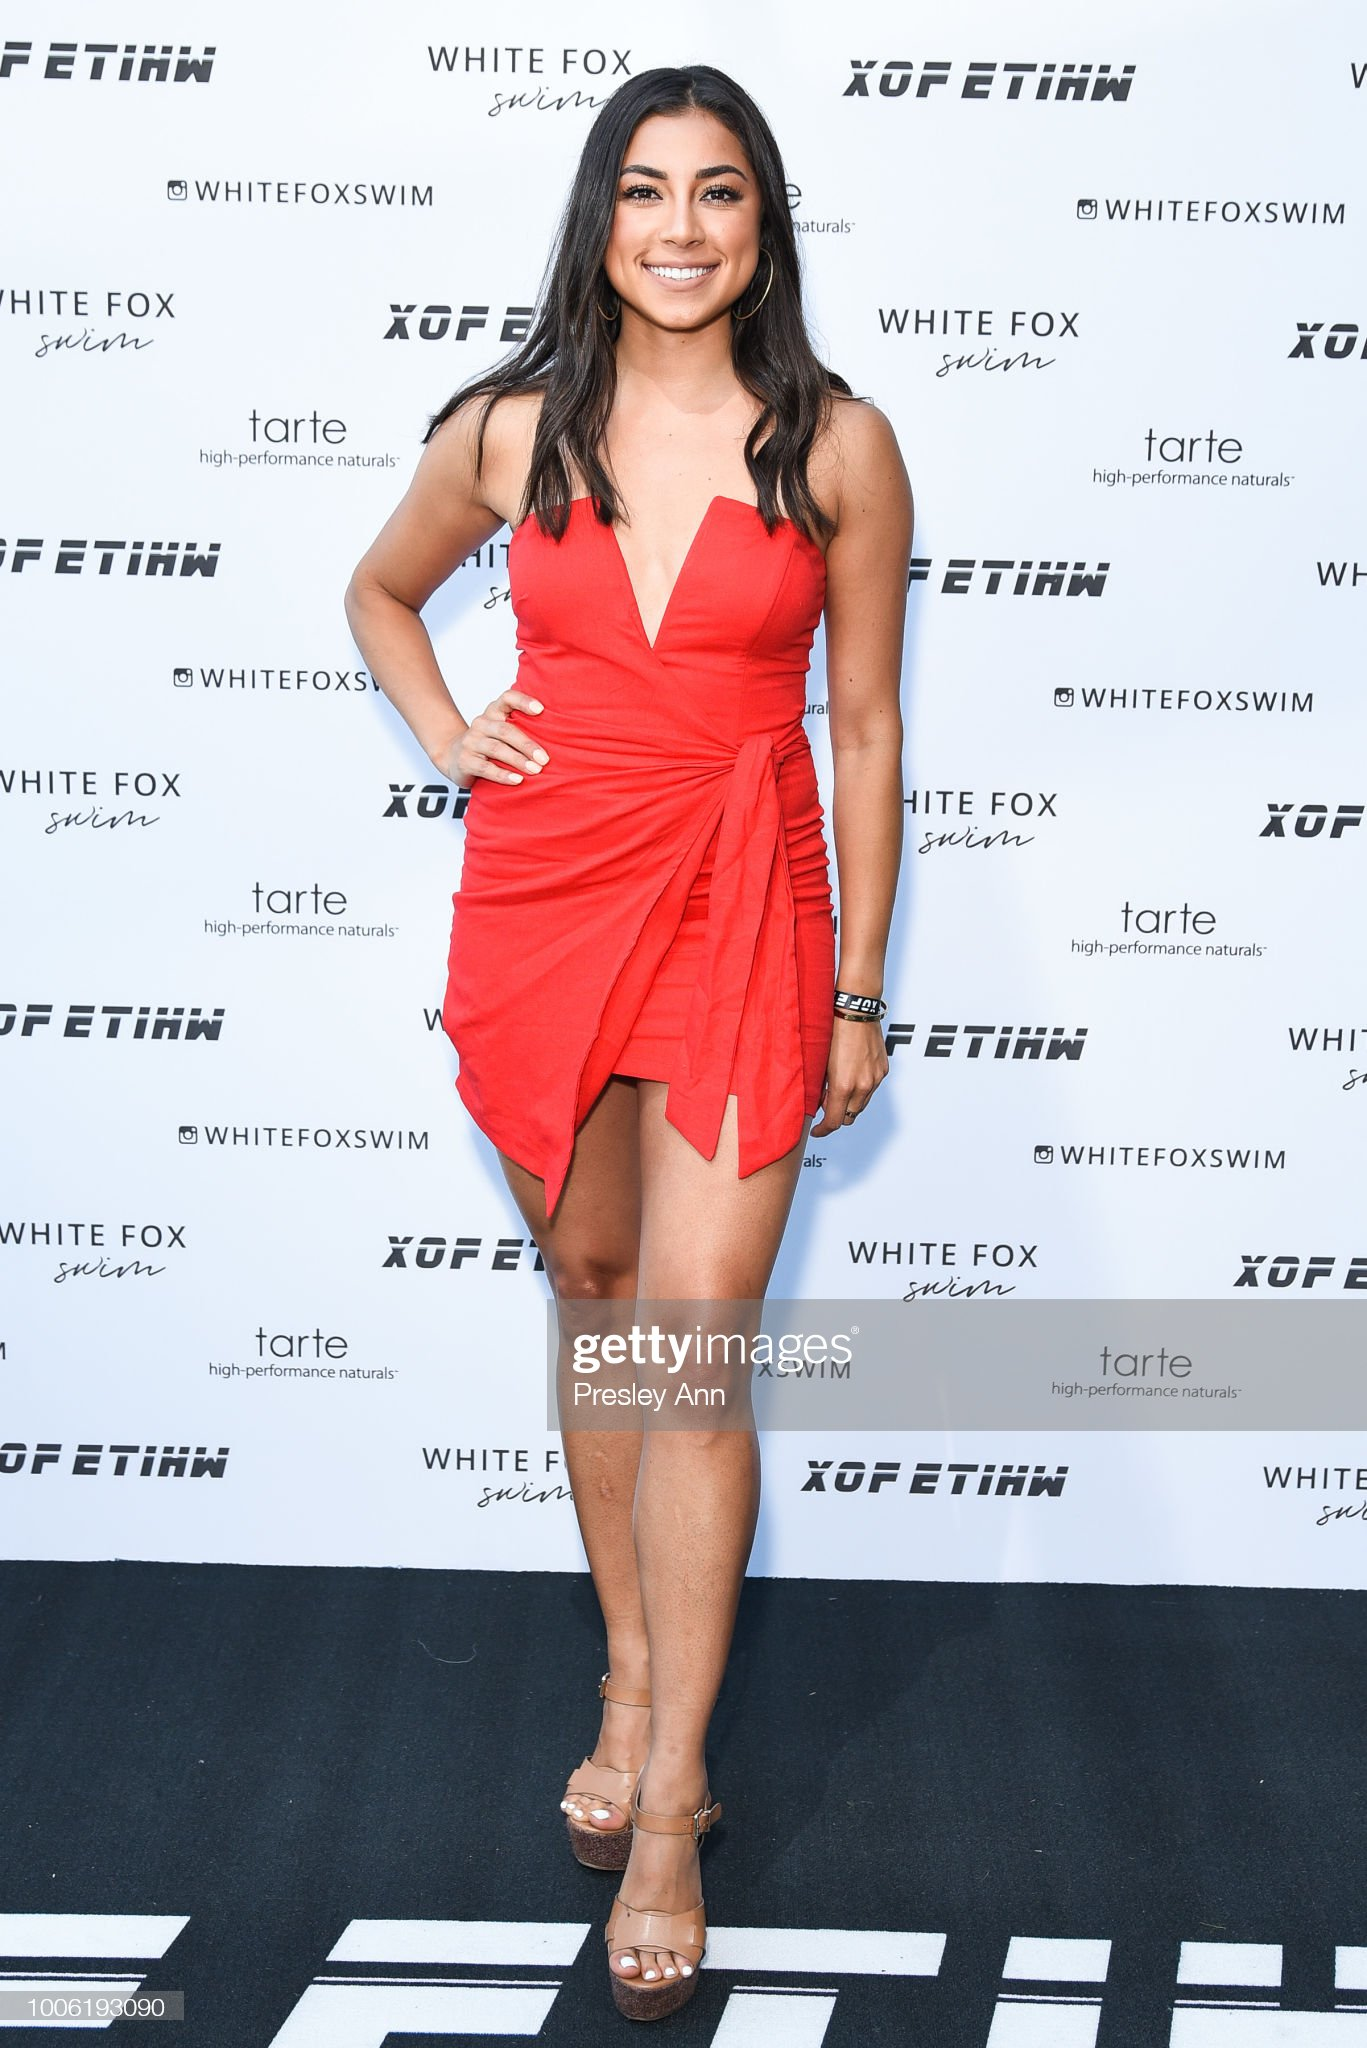 ¿Cuánto mide Jeanine Amapola? - Real height Jeanine-amapola-attends-white-fox-boutique-swimwear-launch-of-100-at-picture-id1006193090?s=2048x2048